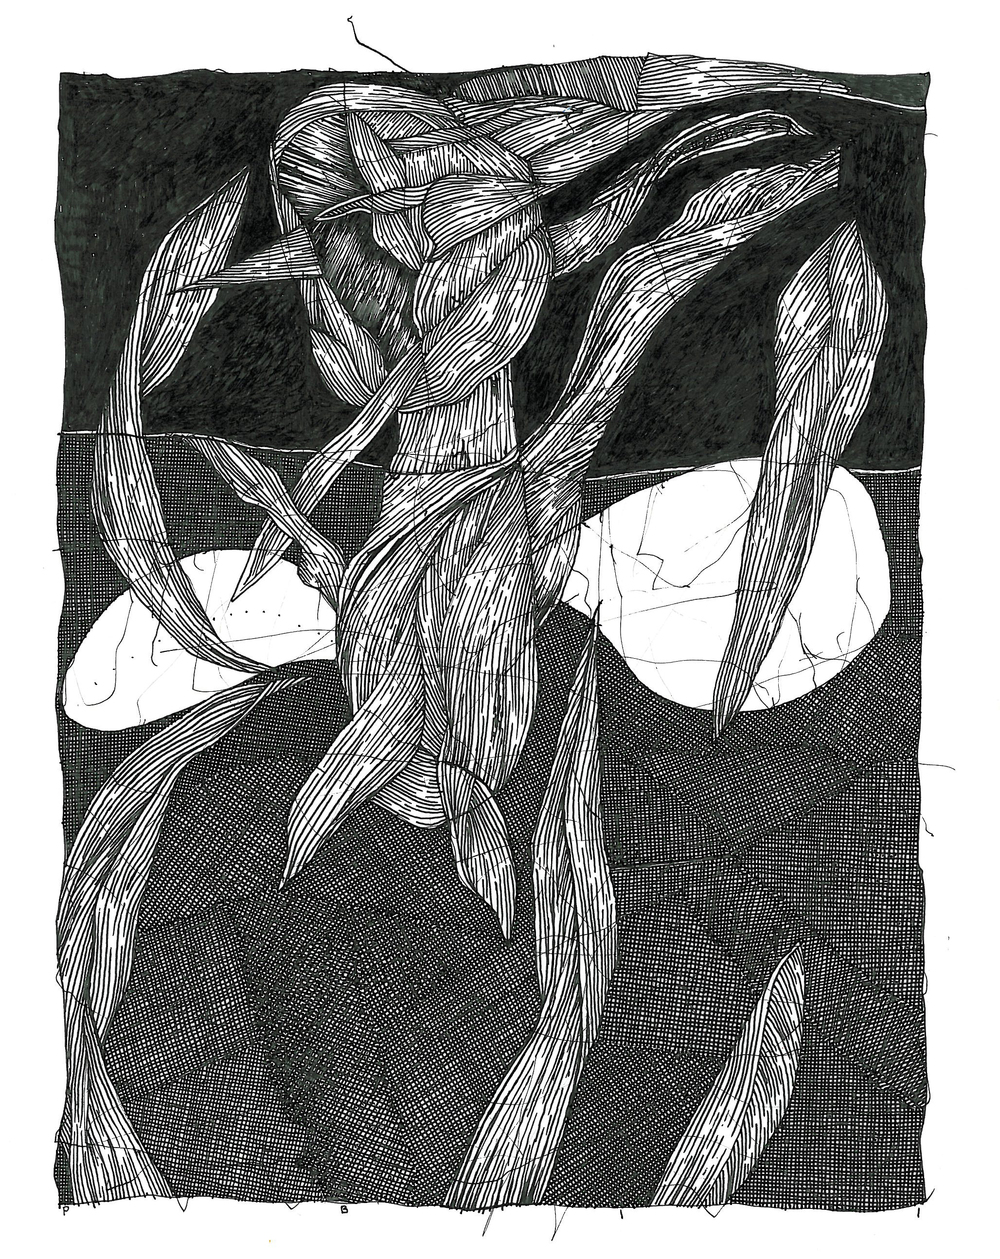 "Pen and Ink - 6"" x 8"" - 2011"